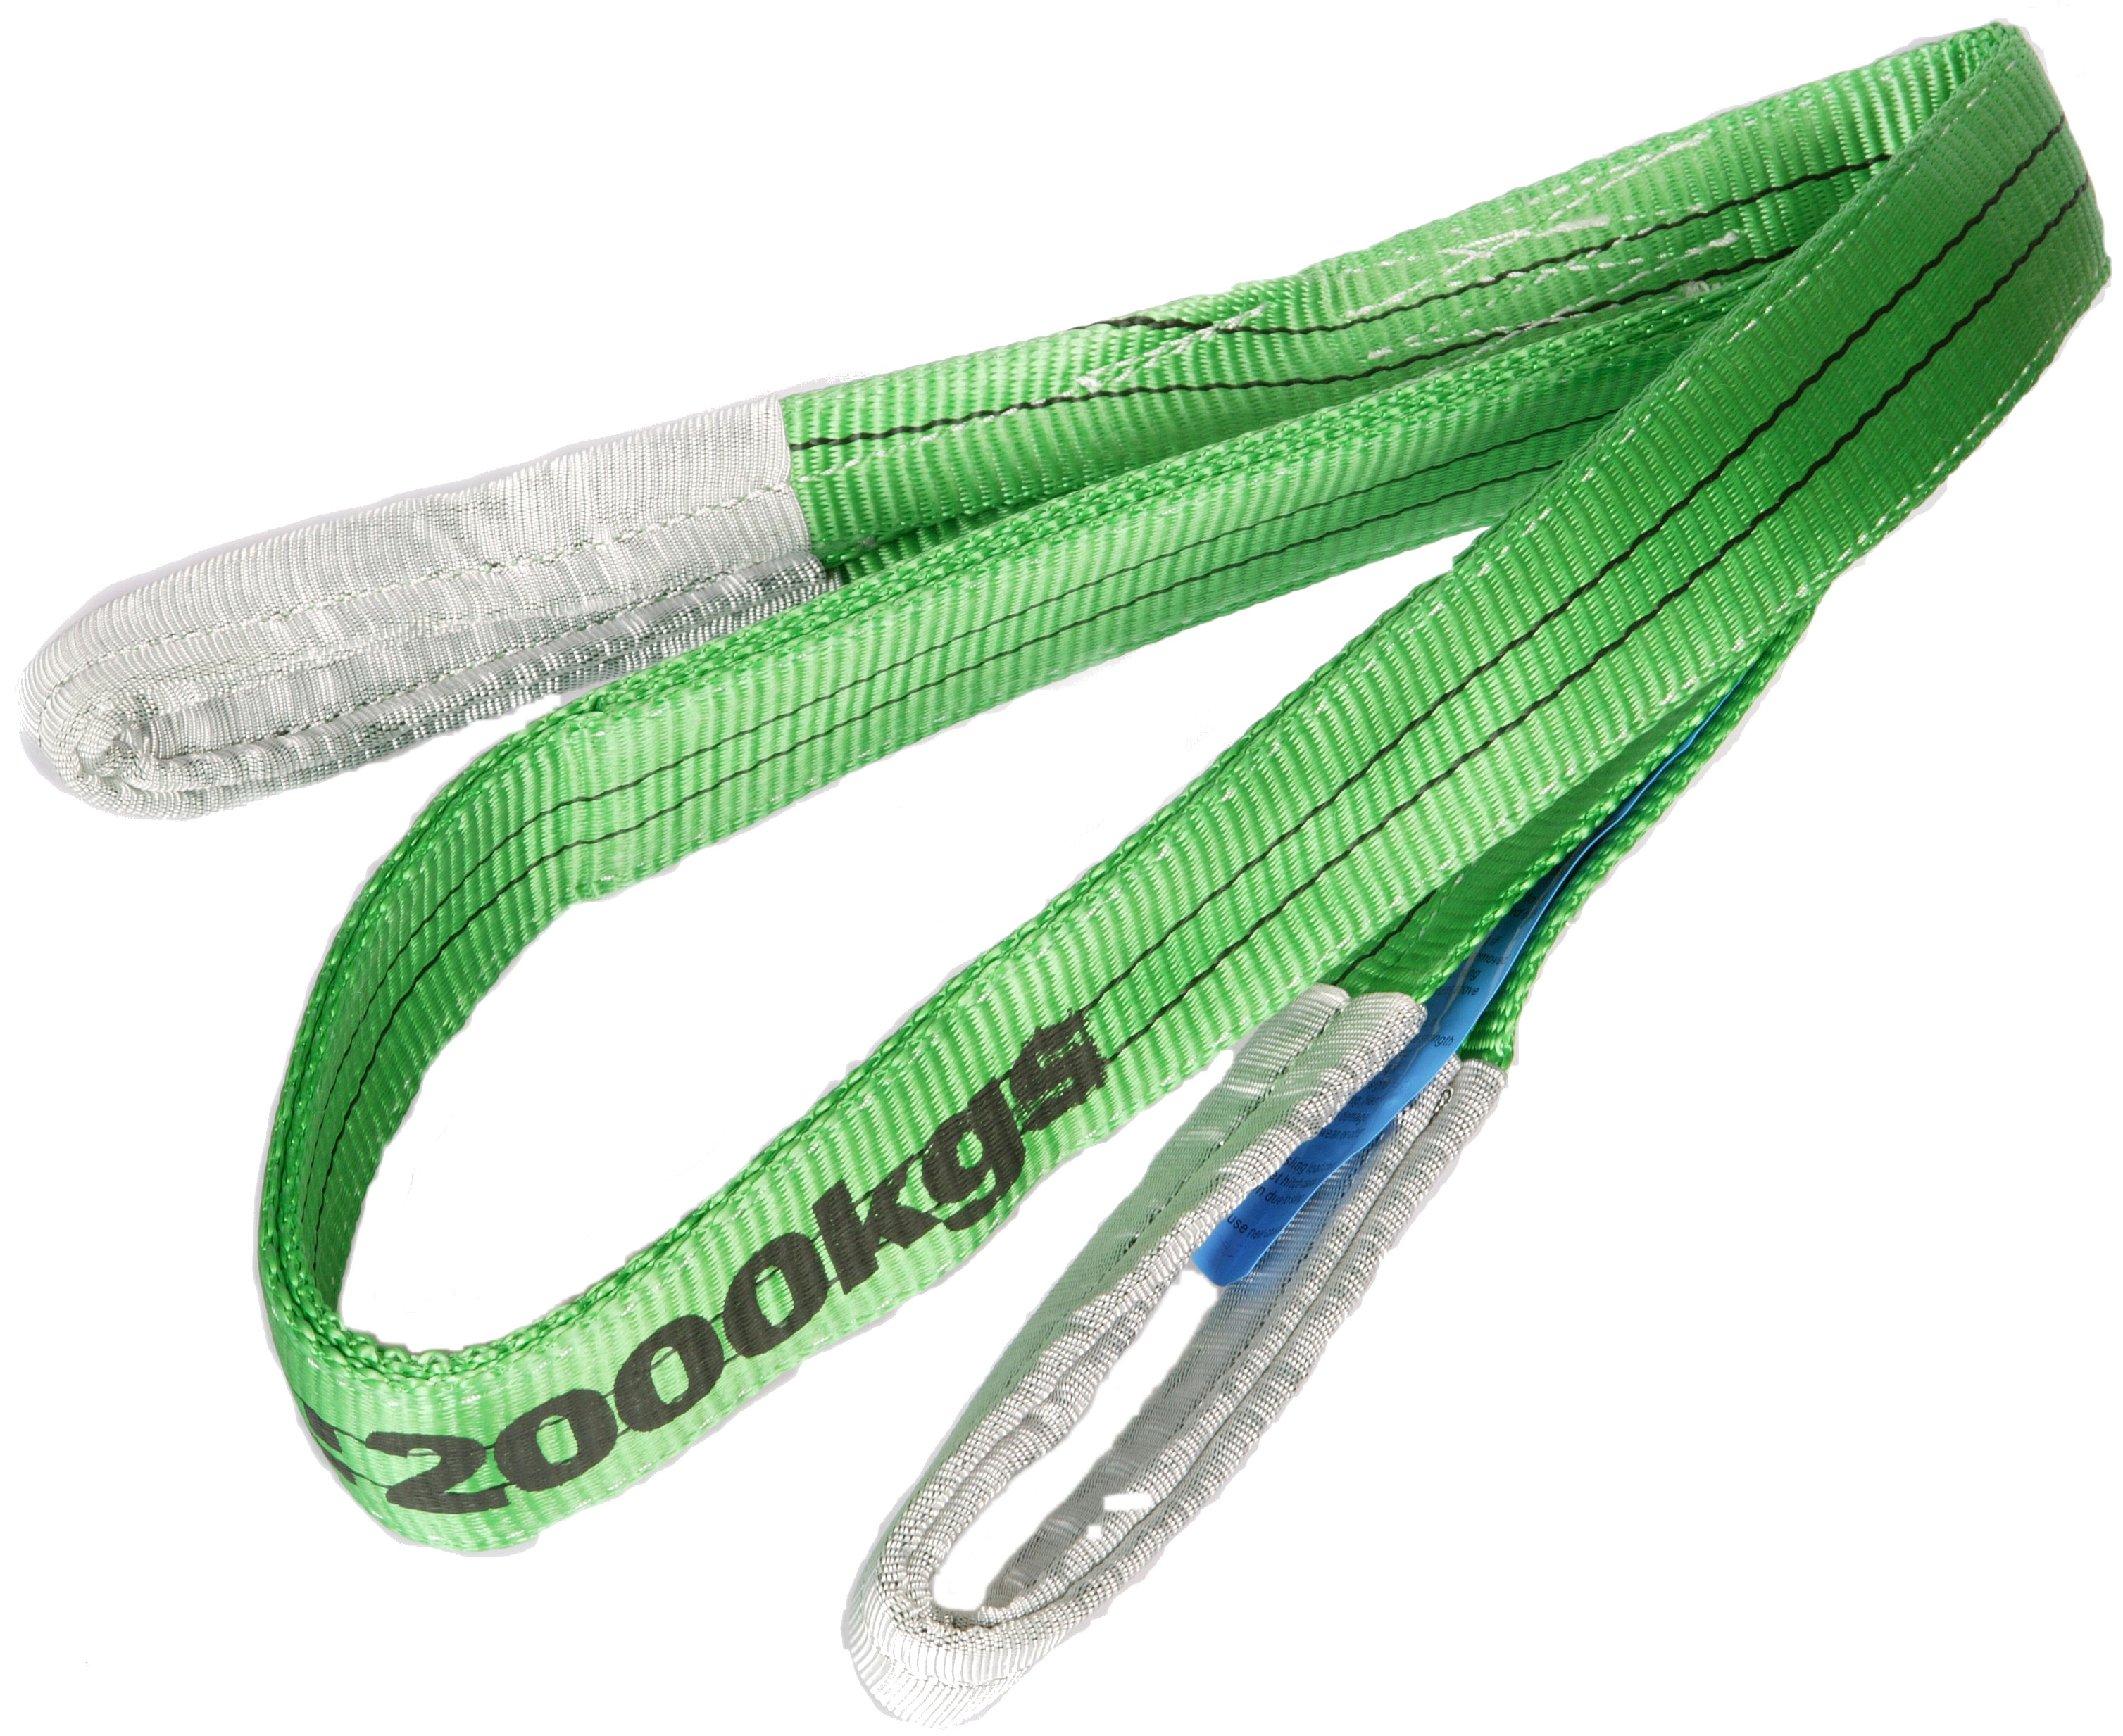 polyester Double Ply flat webbing sling,Double ply Polyester Flat Webbing Sling